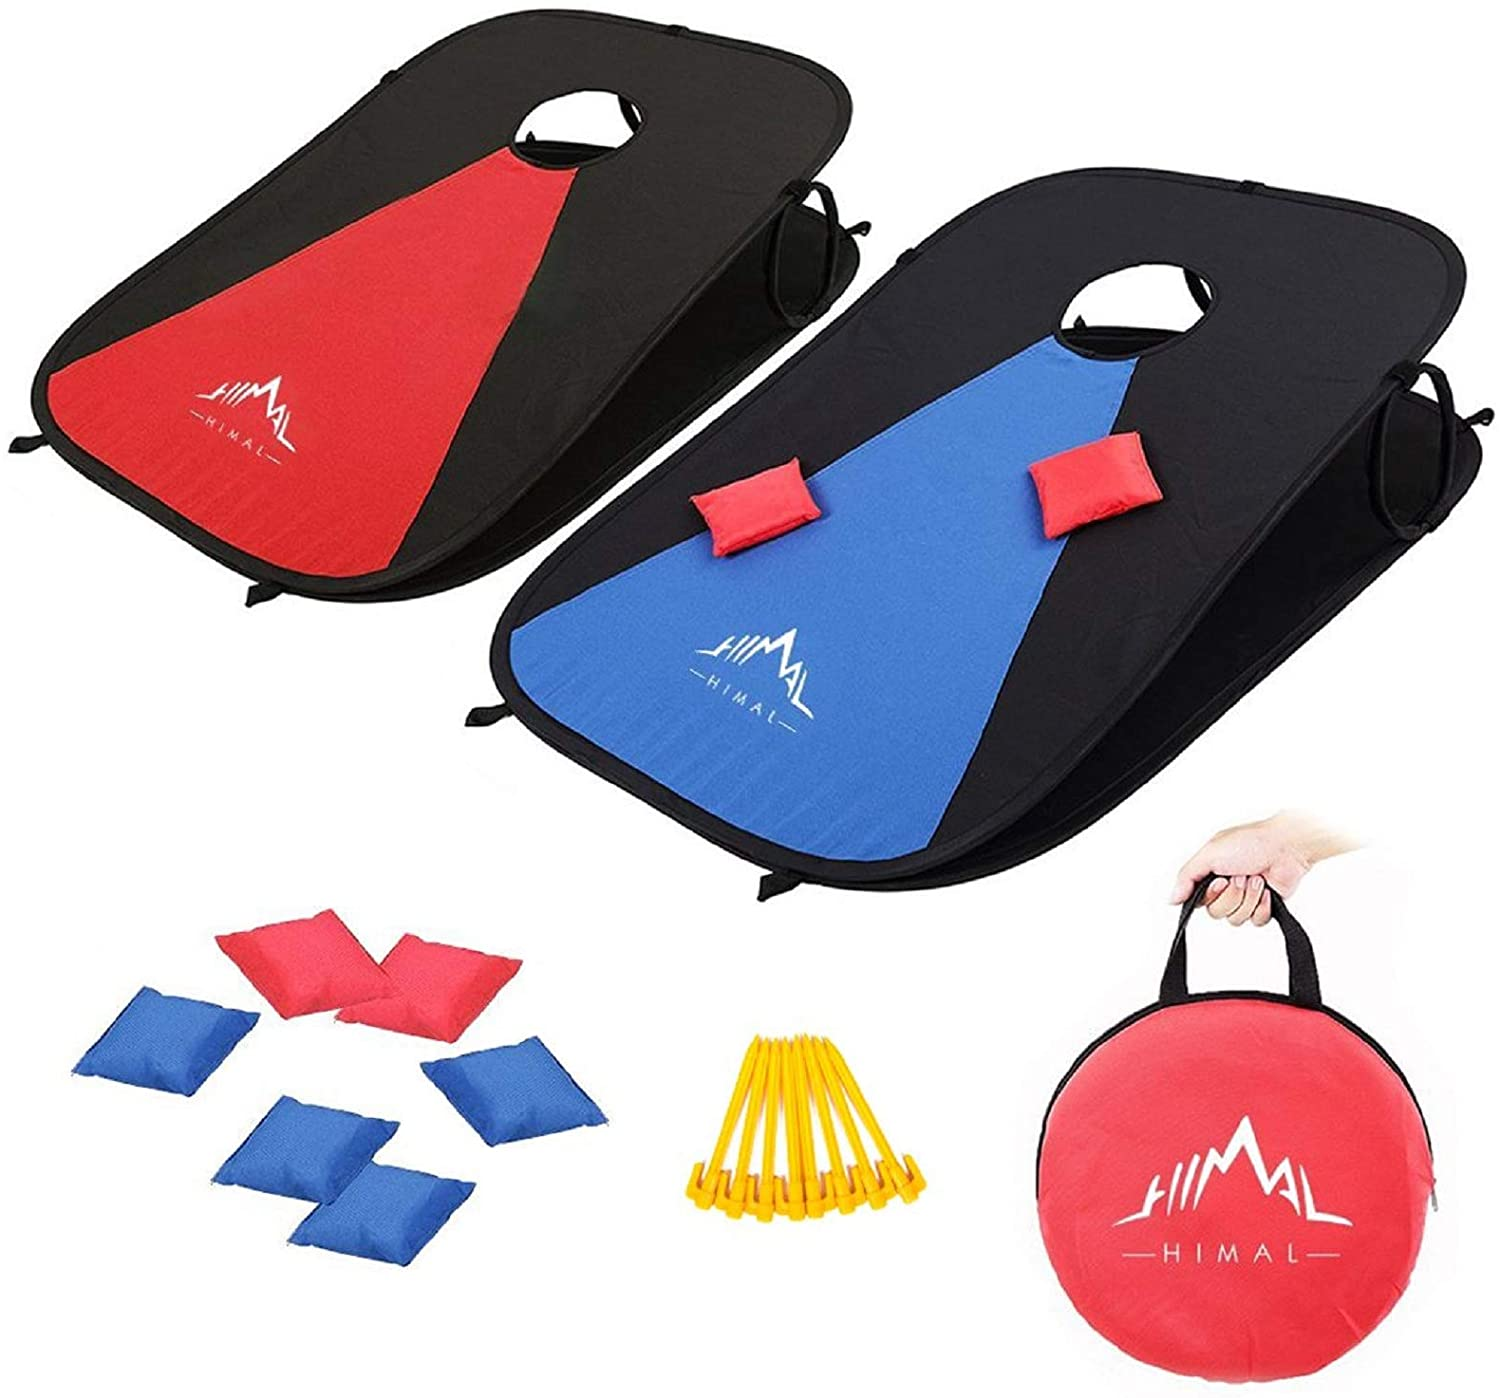 Collapsible Portable Corn Hole Boards With 8 Cornhole Bean Bags